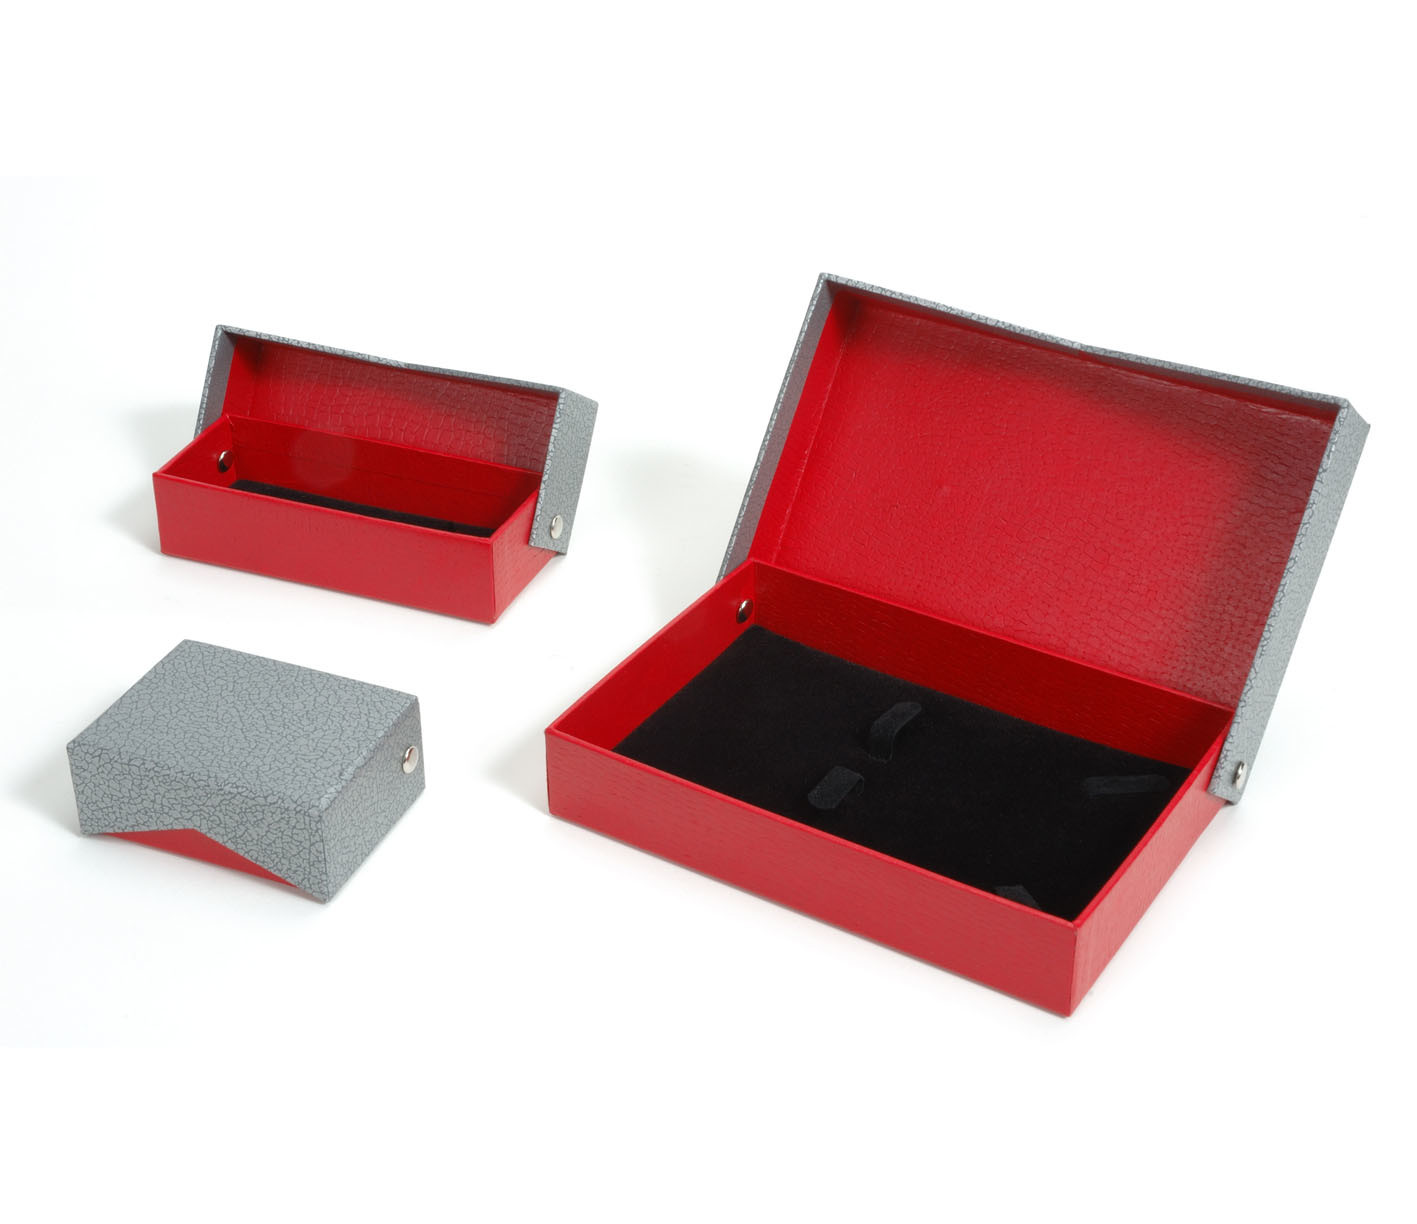 Cloth Ring Jewel Box, Wooden Storage Box, Paper Necklace Box, Coin Gift Box, Leather Jewelry Case, Watch Box (002)